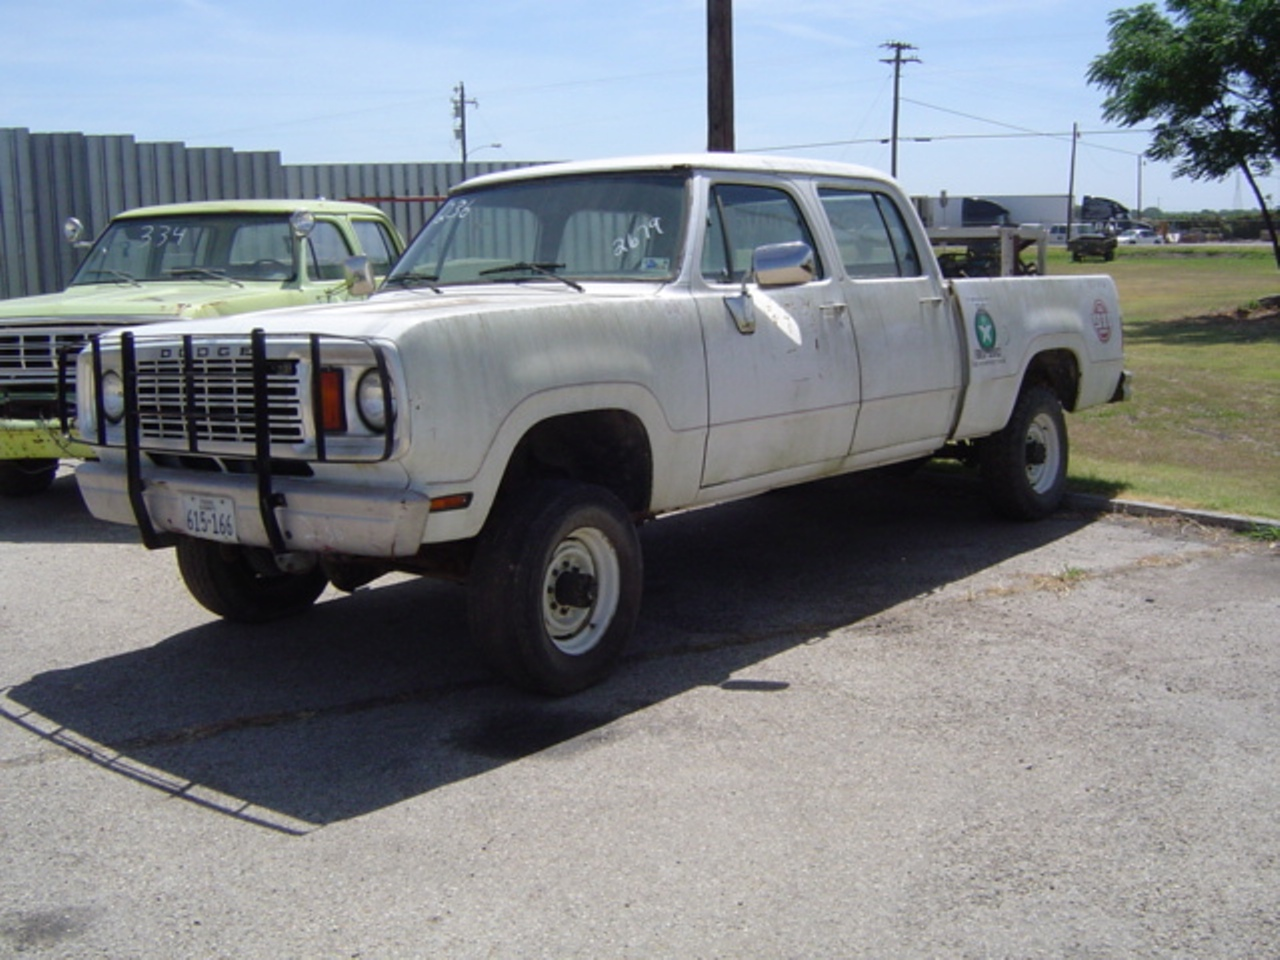 1979 Dodge D200 Wiring Diagram Images Gallery. w series dodge power wagon  ...